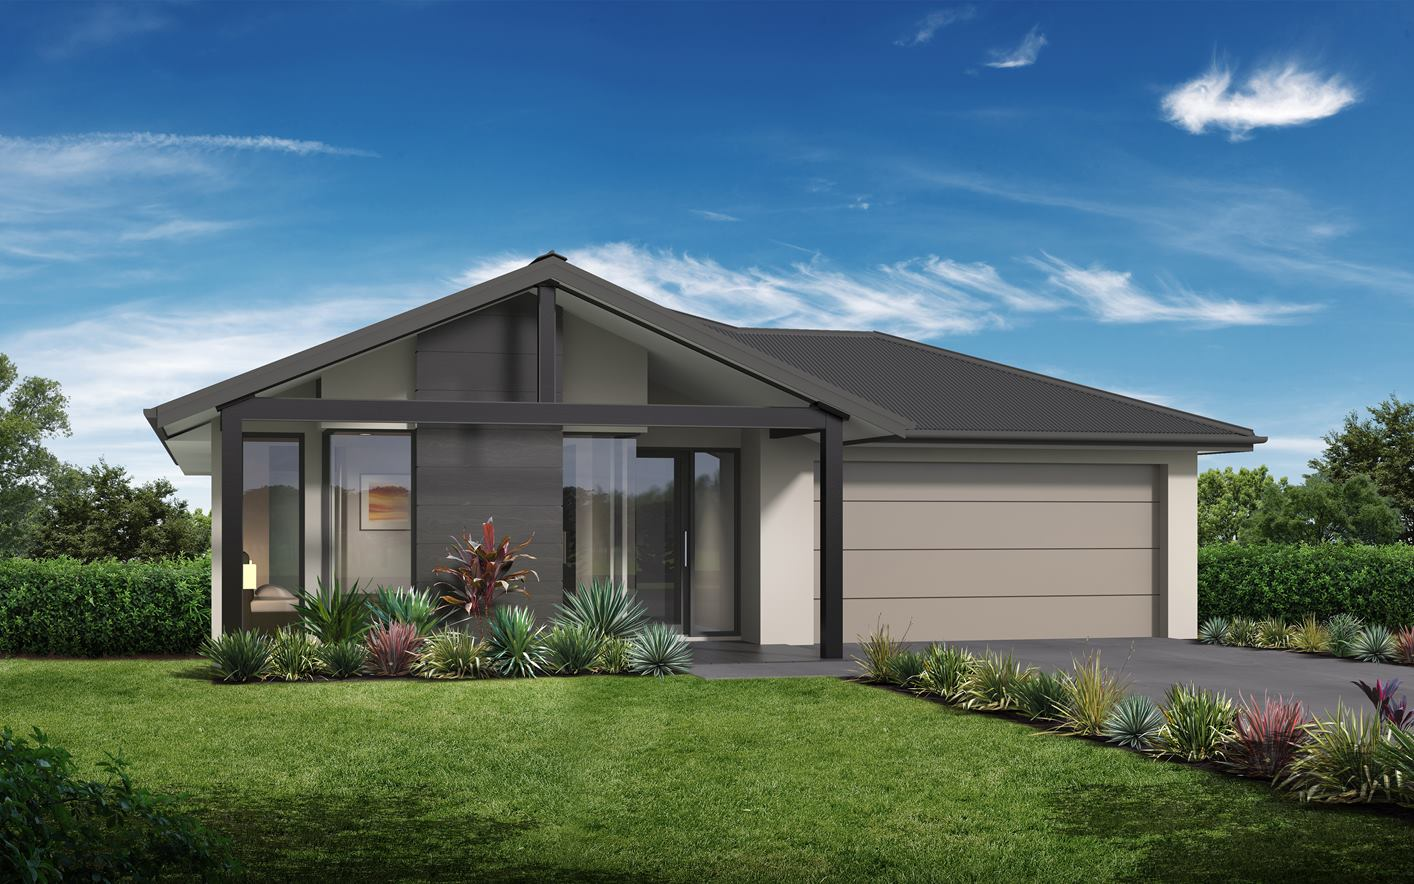 Metford Home Design with Coastal Facade